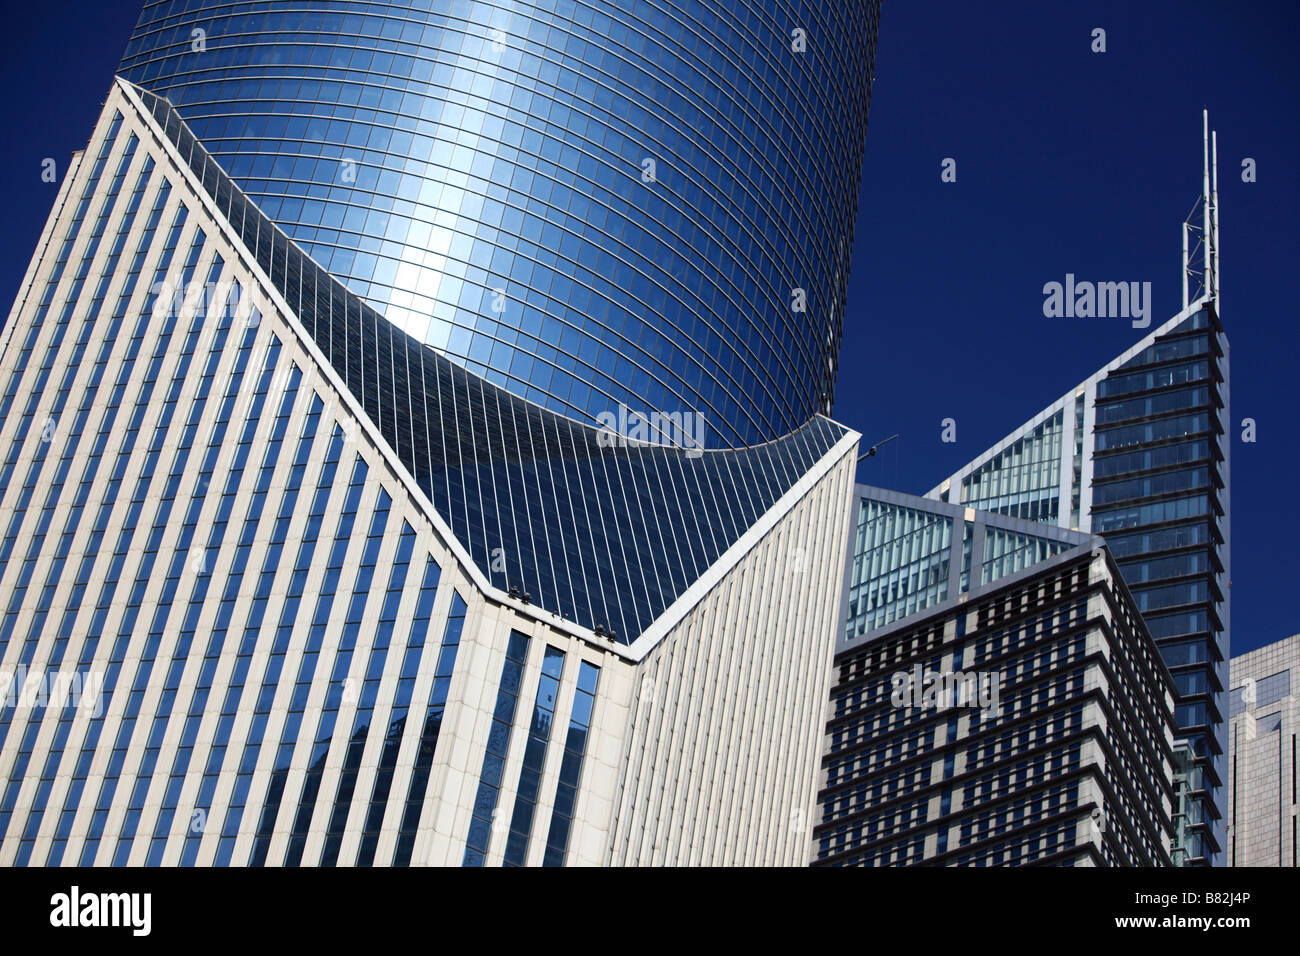 Detail office block Central Shanghai China - Stock Image